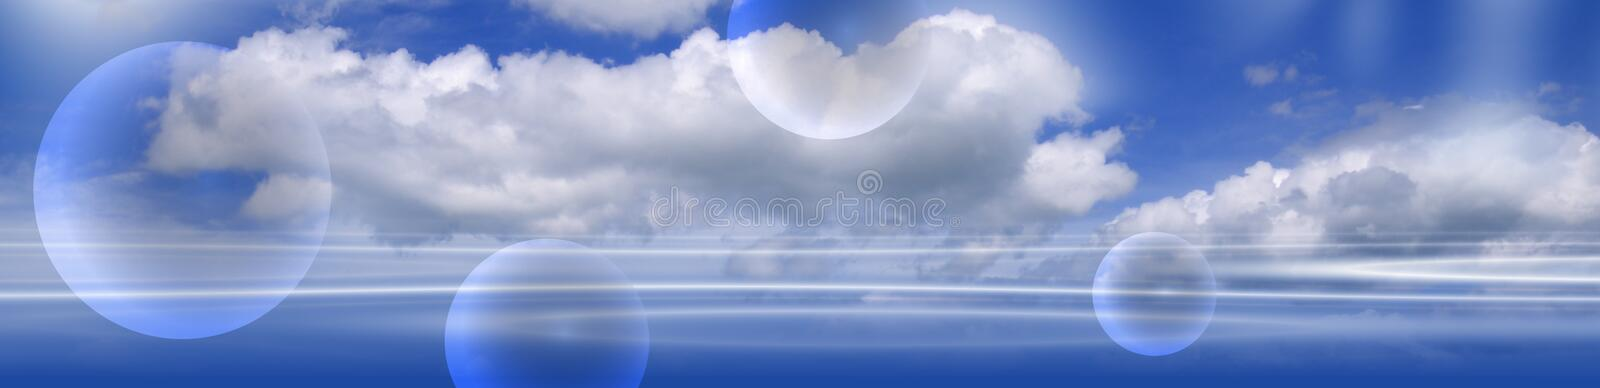 Cloudy Banner # 2 stock illustration